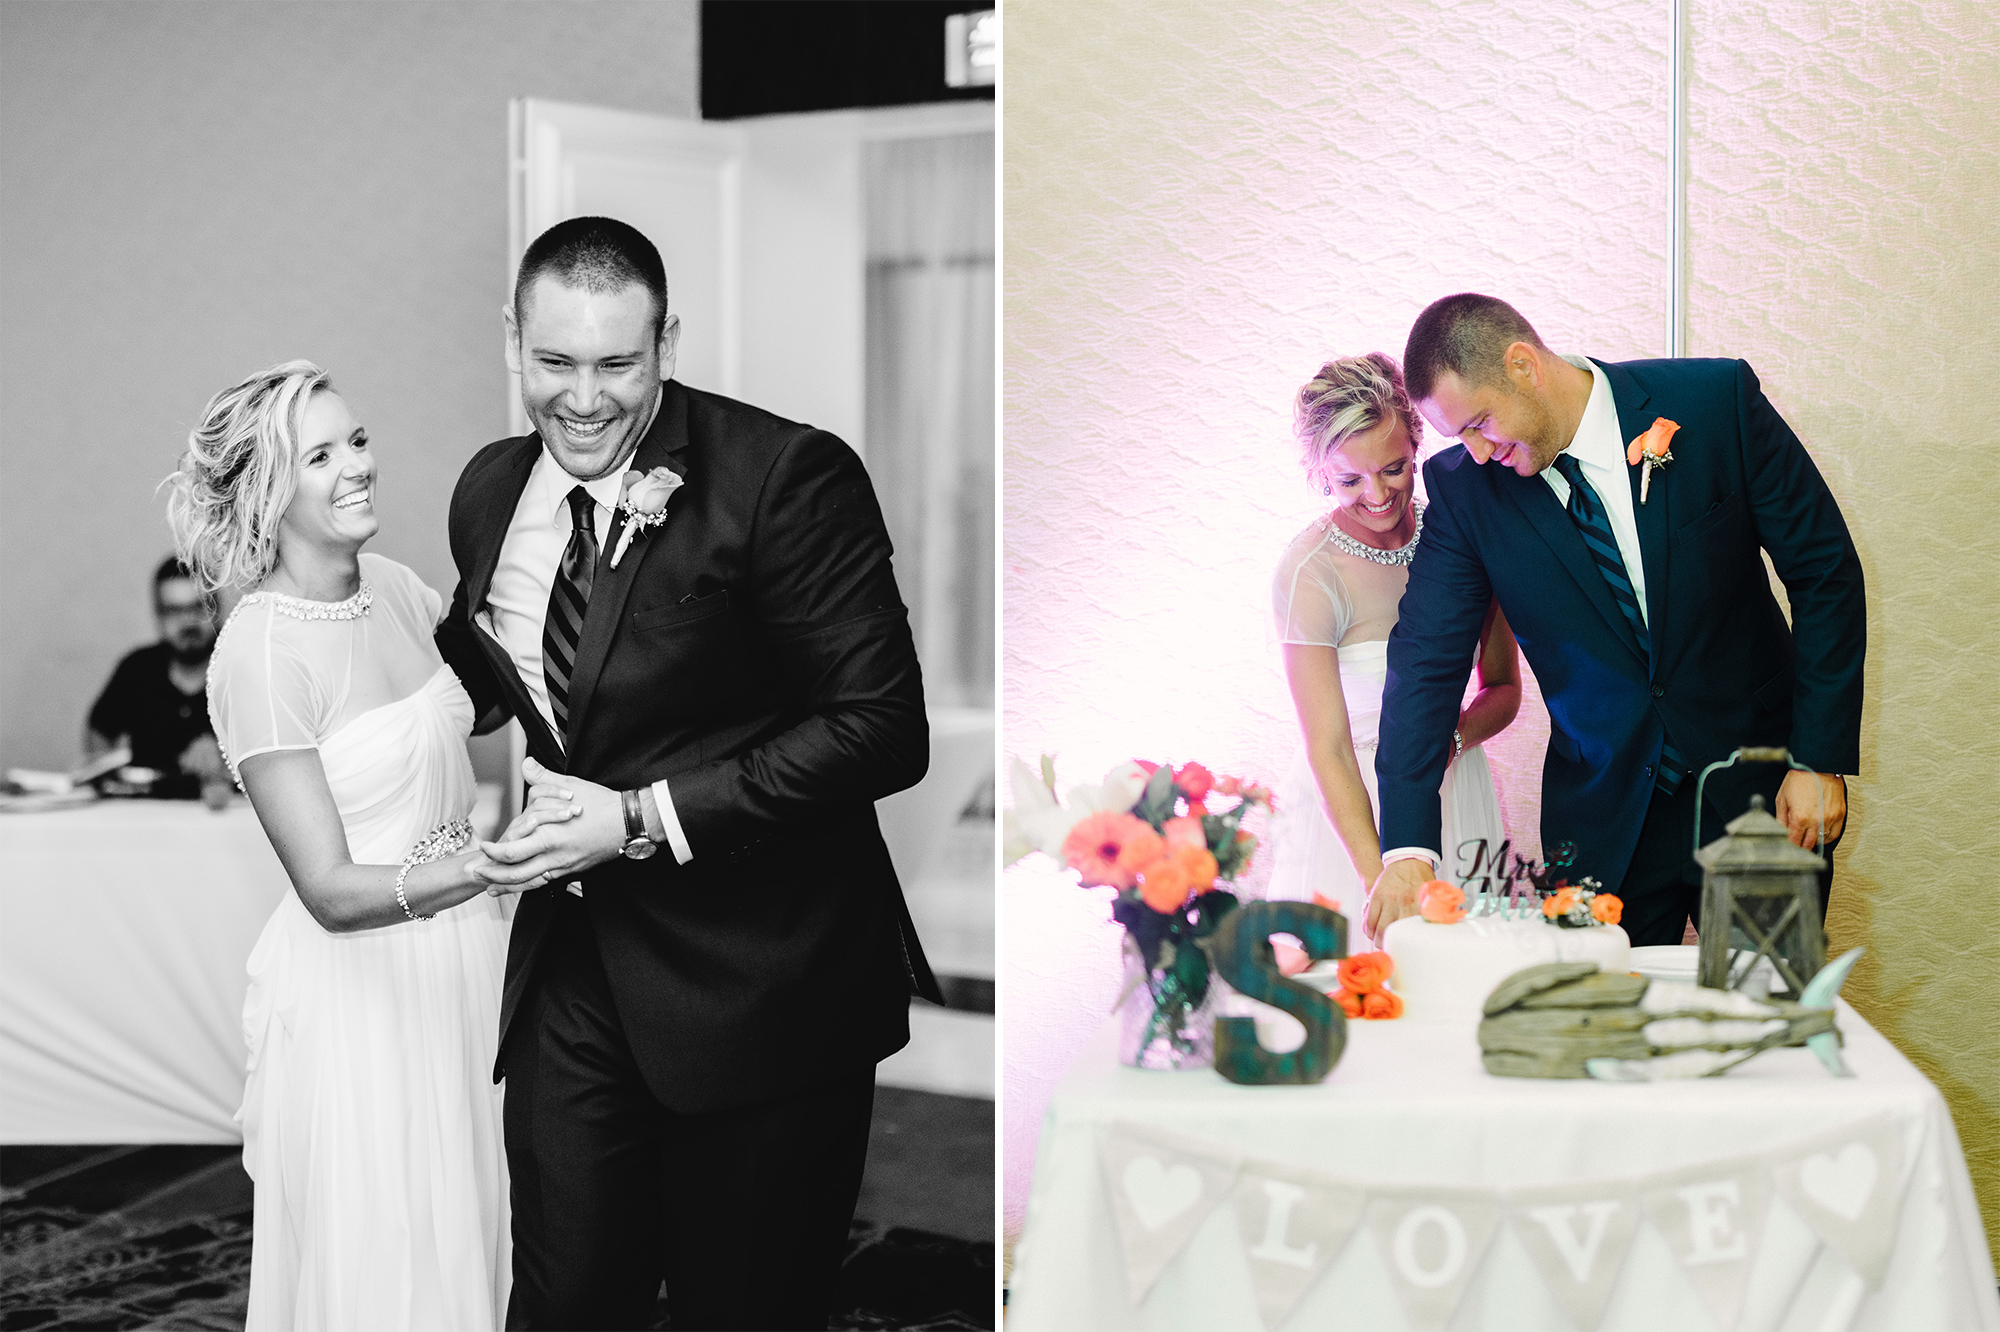 Wedding photographs by Rusty Wright, taken at the Moon Palace Resort in Riviera Maya, Mexico.